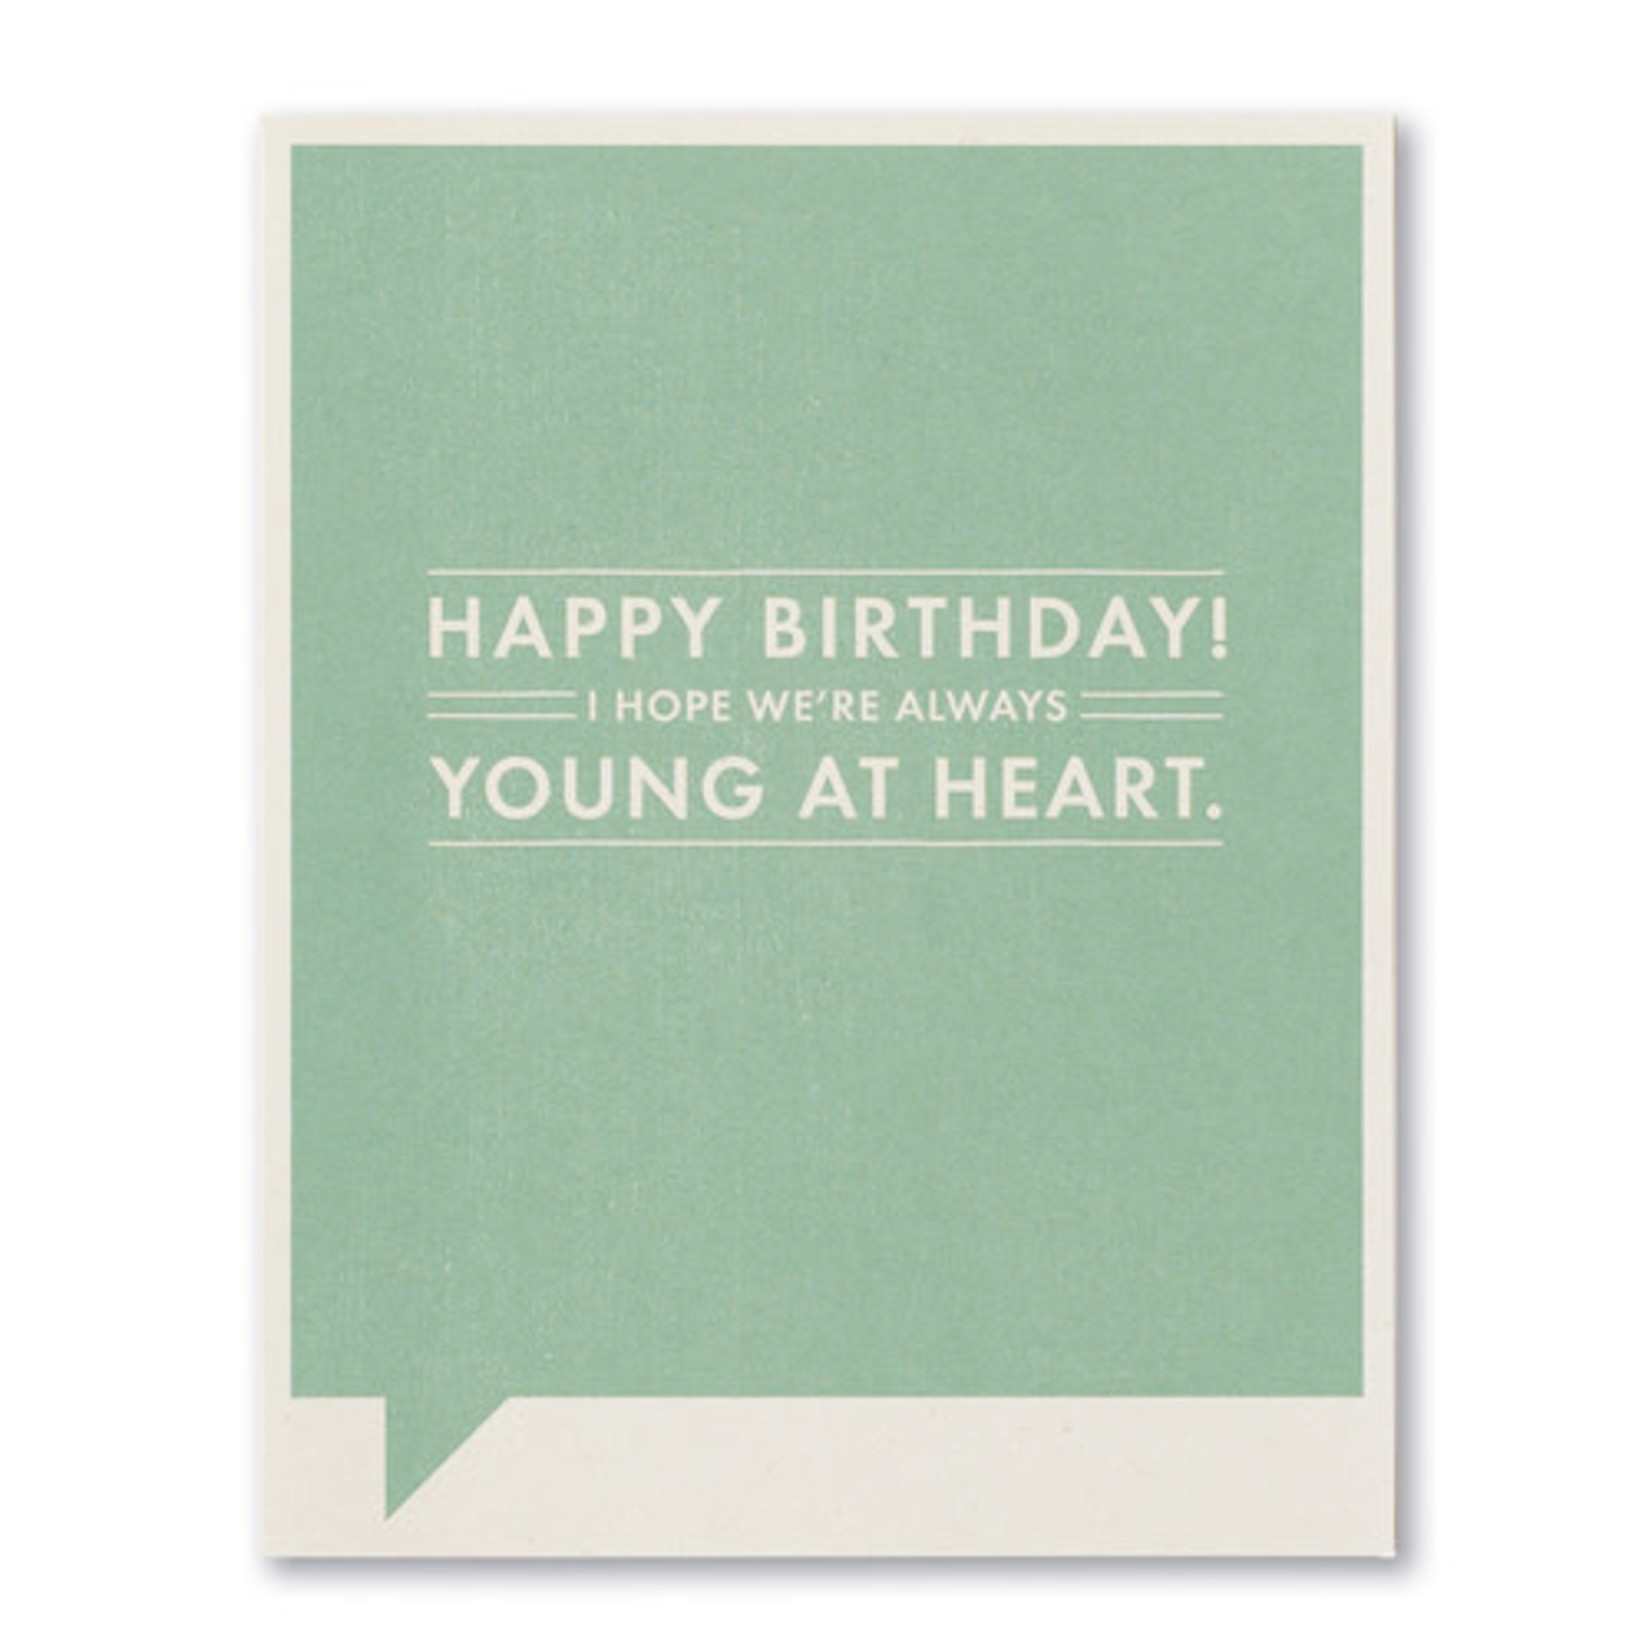 HAPPY BIRTHDAY! I HOPE WE ARE ALWAYS YOUNG AT HEART CARD